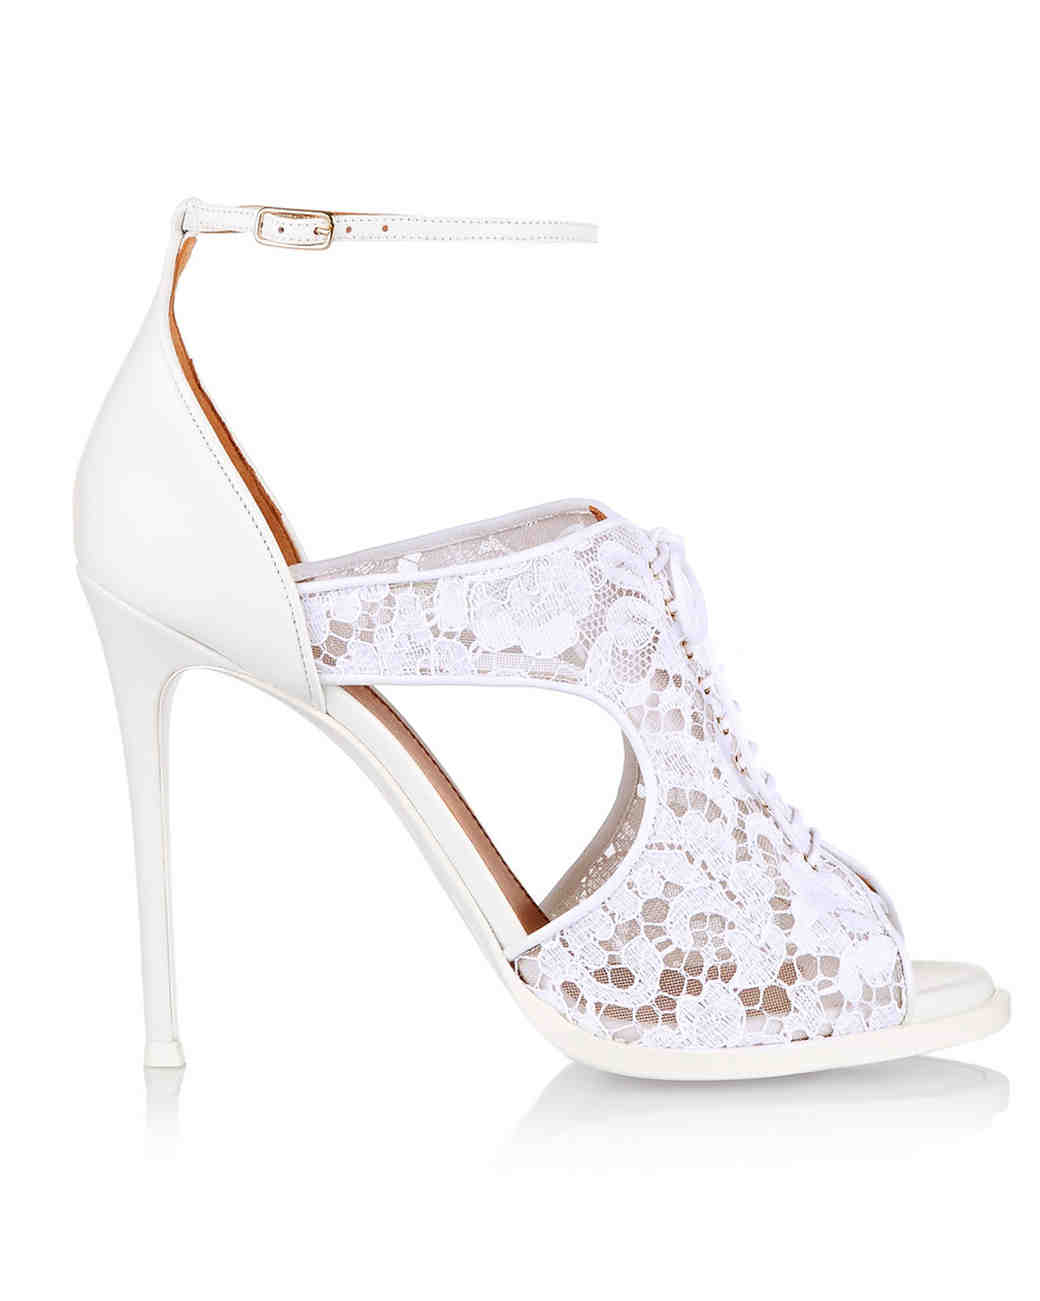 50 Best Shoes For A Bride To Wear To A Summer Wedding | Martha Stewart  Weddings